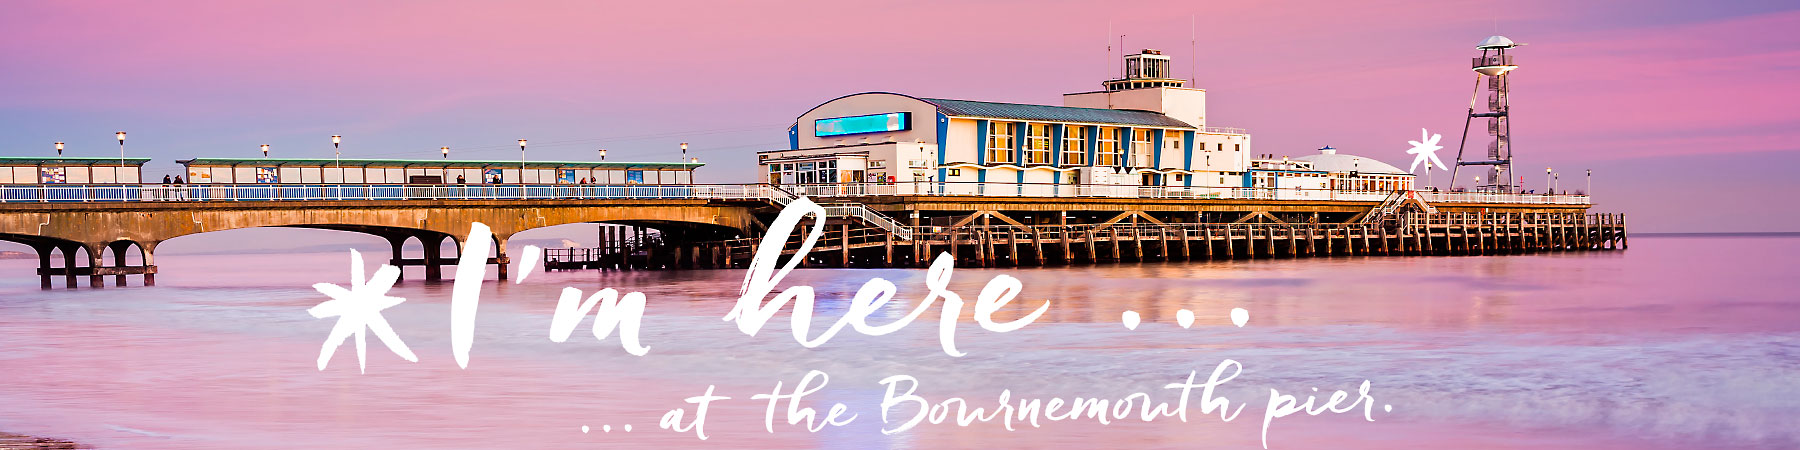 I'm here ... at the Bournemouth Pier.